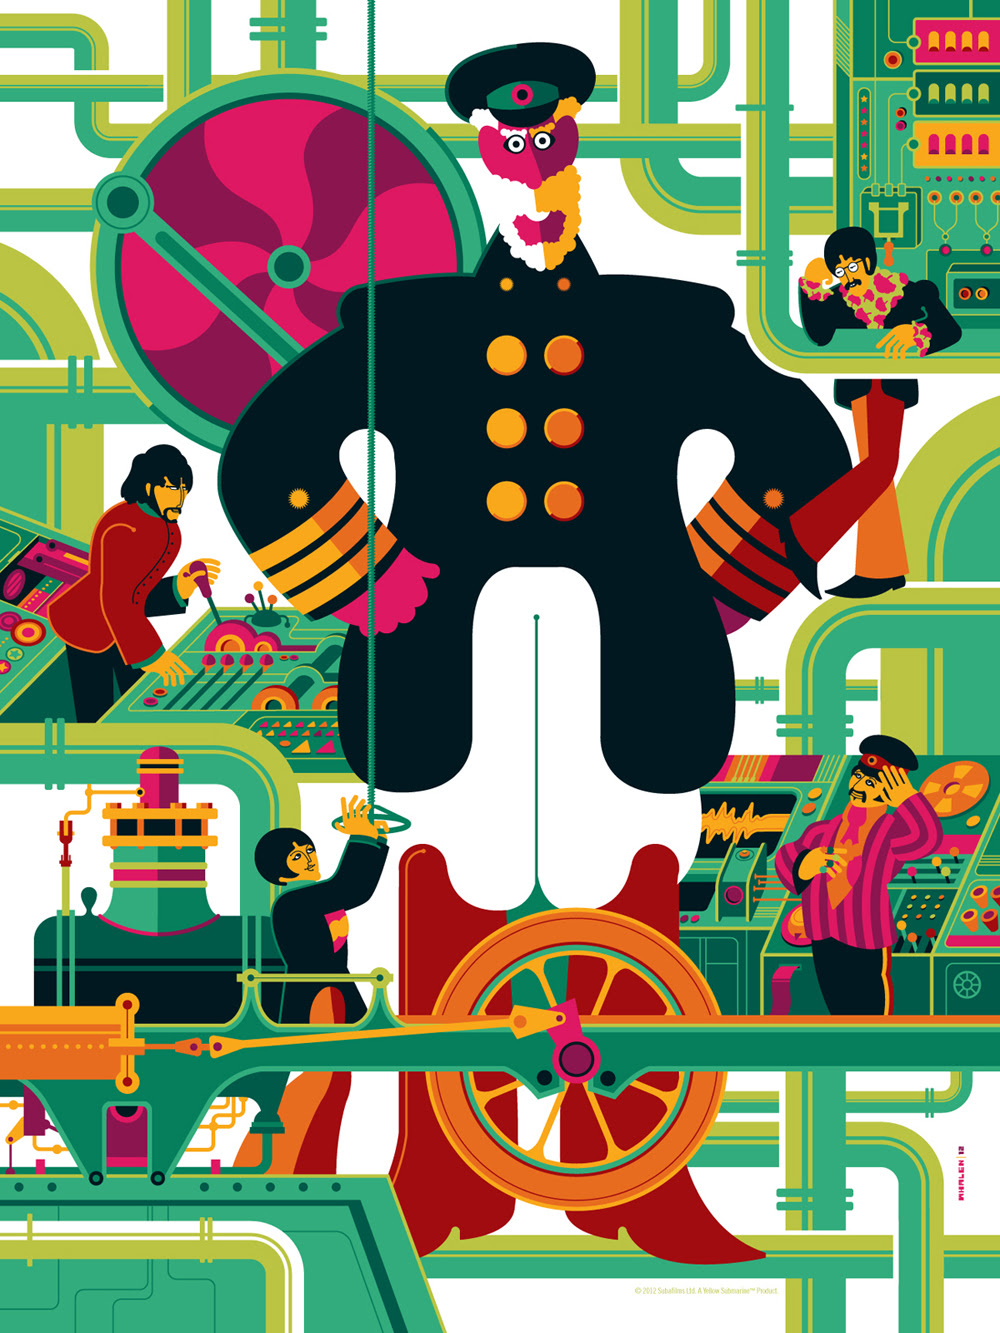 Tom Whalen S Definitive 5 Print Release Of The Beatles Yellow